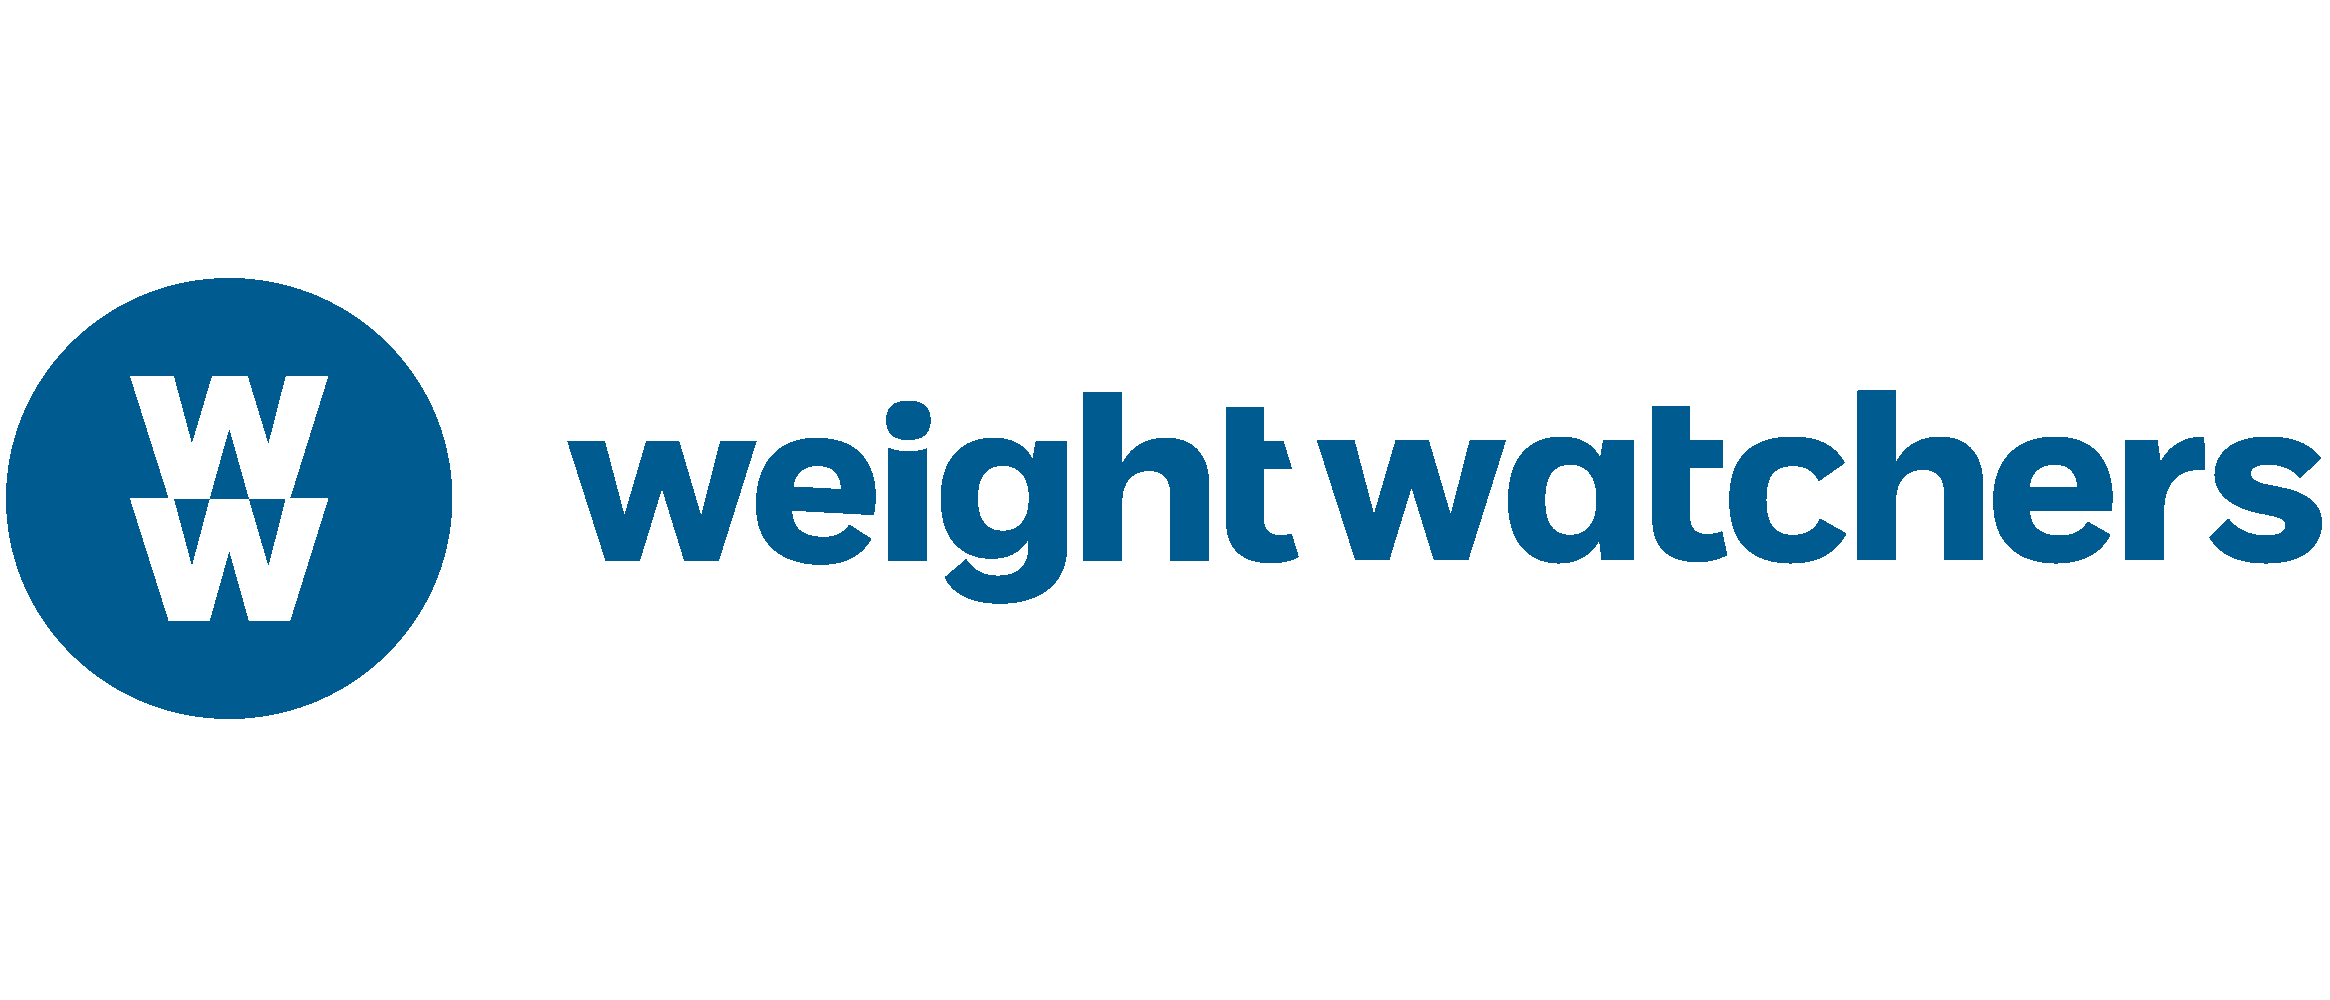 Weightwatchers.be